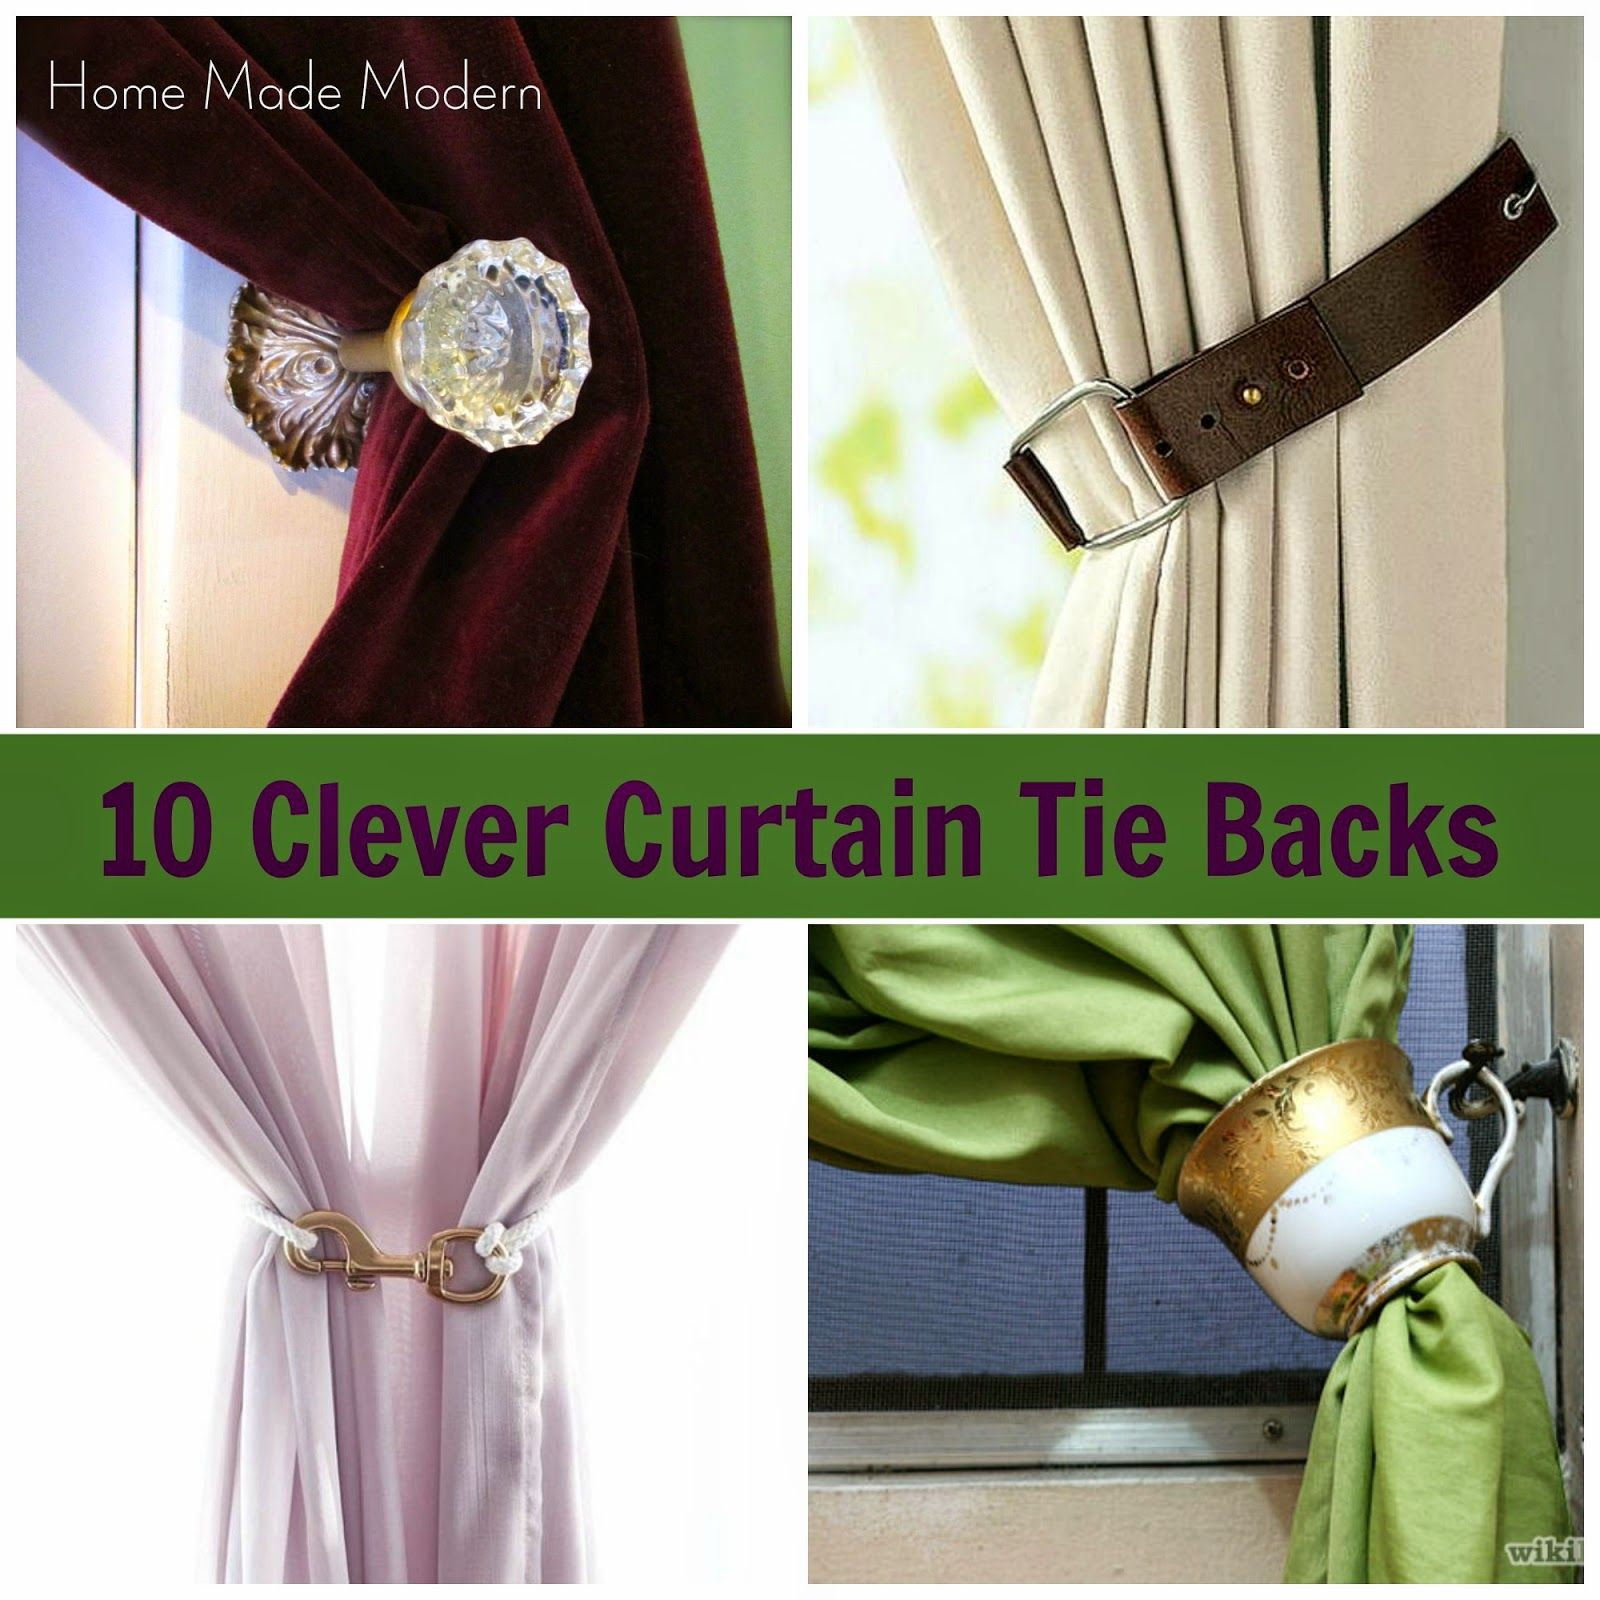 10 Clever Curtain Tie Backs Curtain Tie Backs Curtain Tie Backs